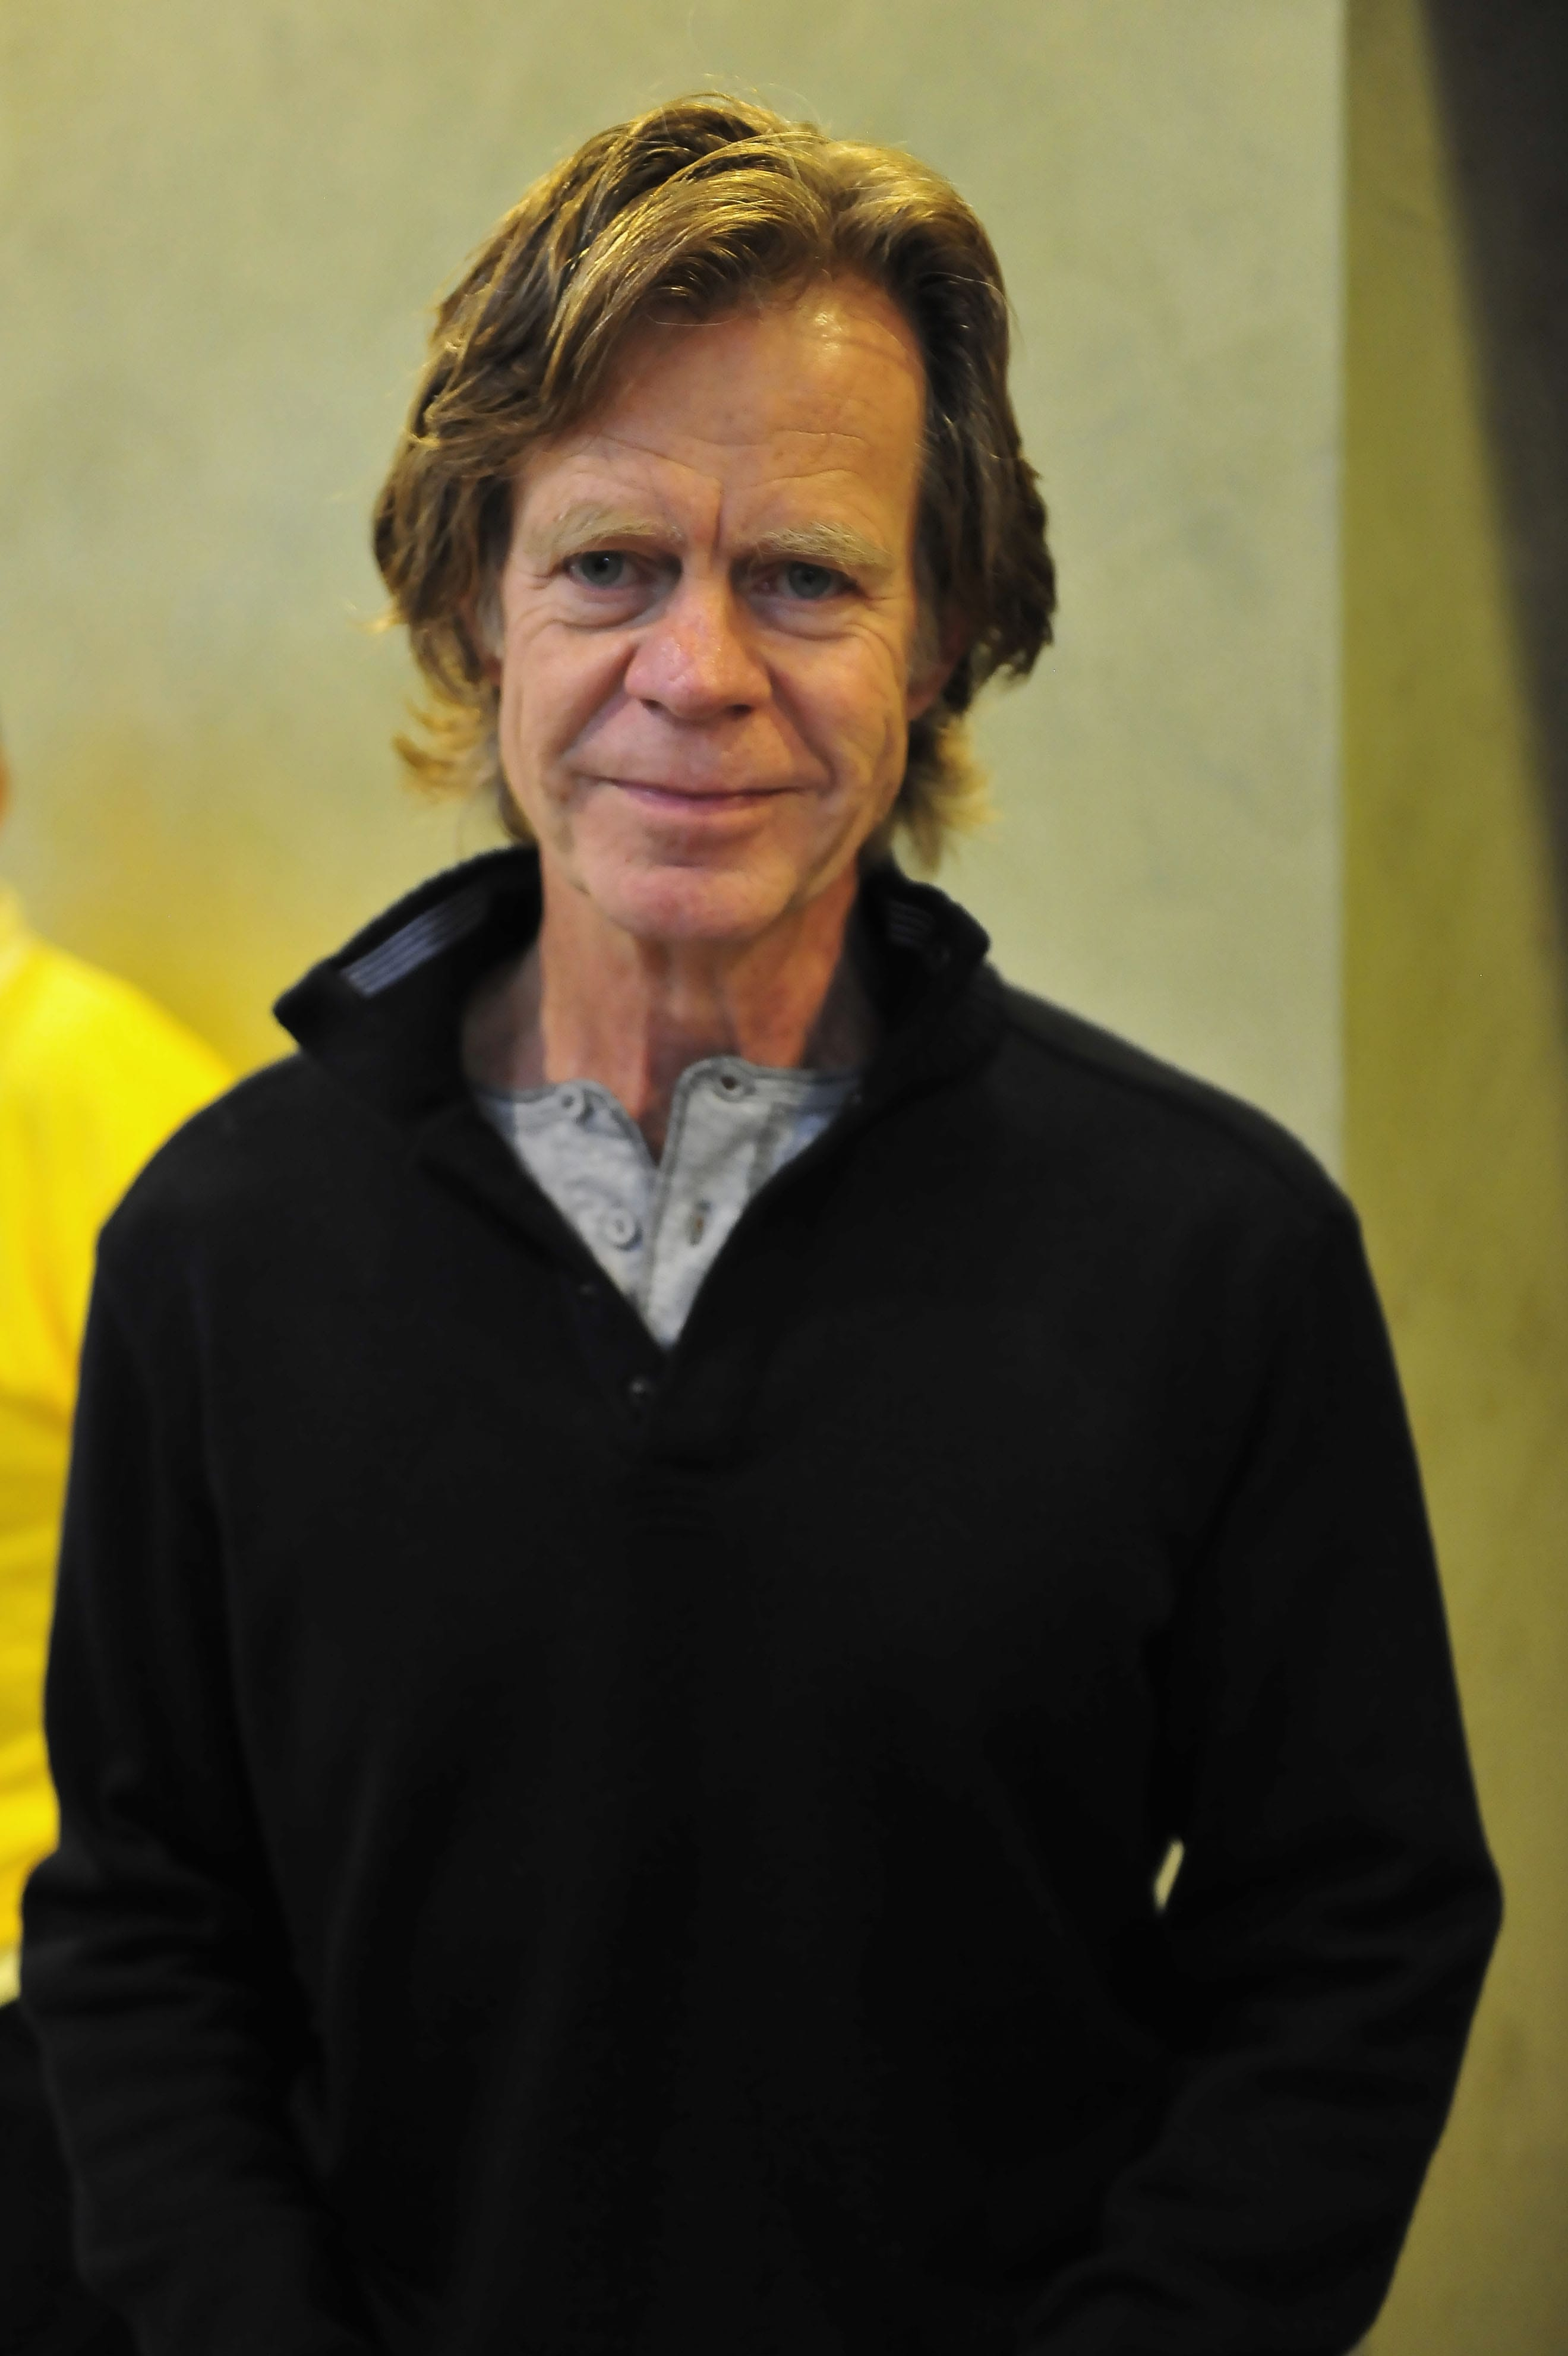 William Macy For mobile